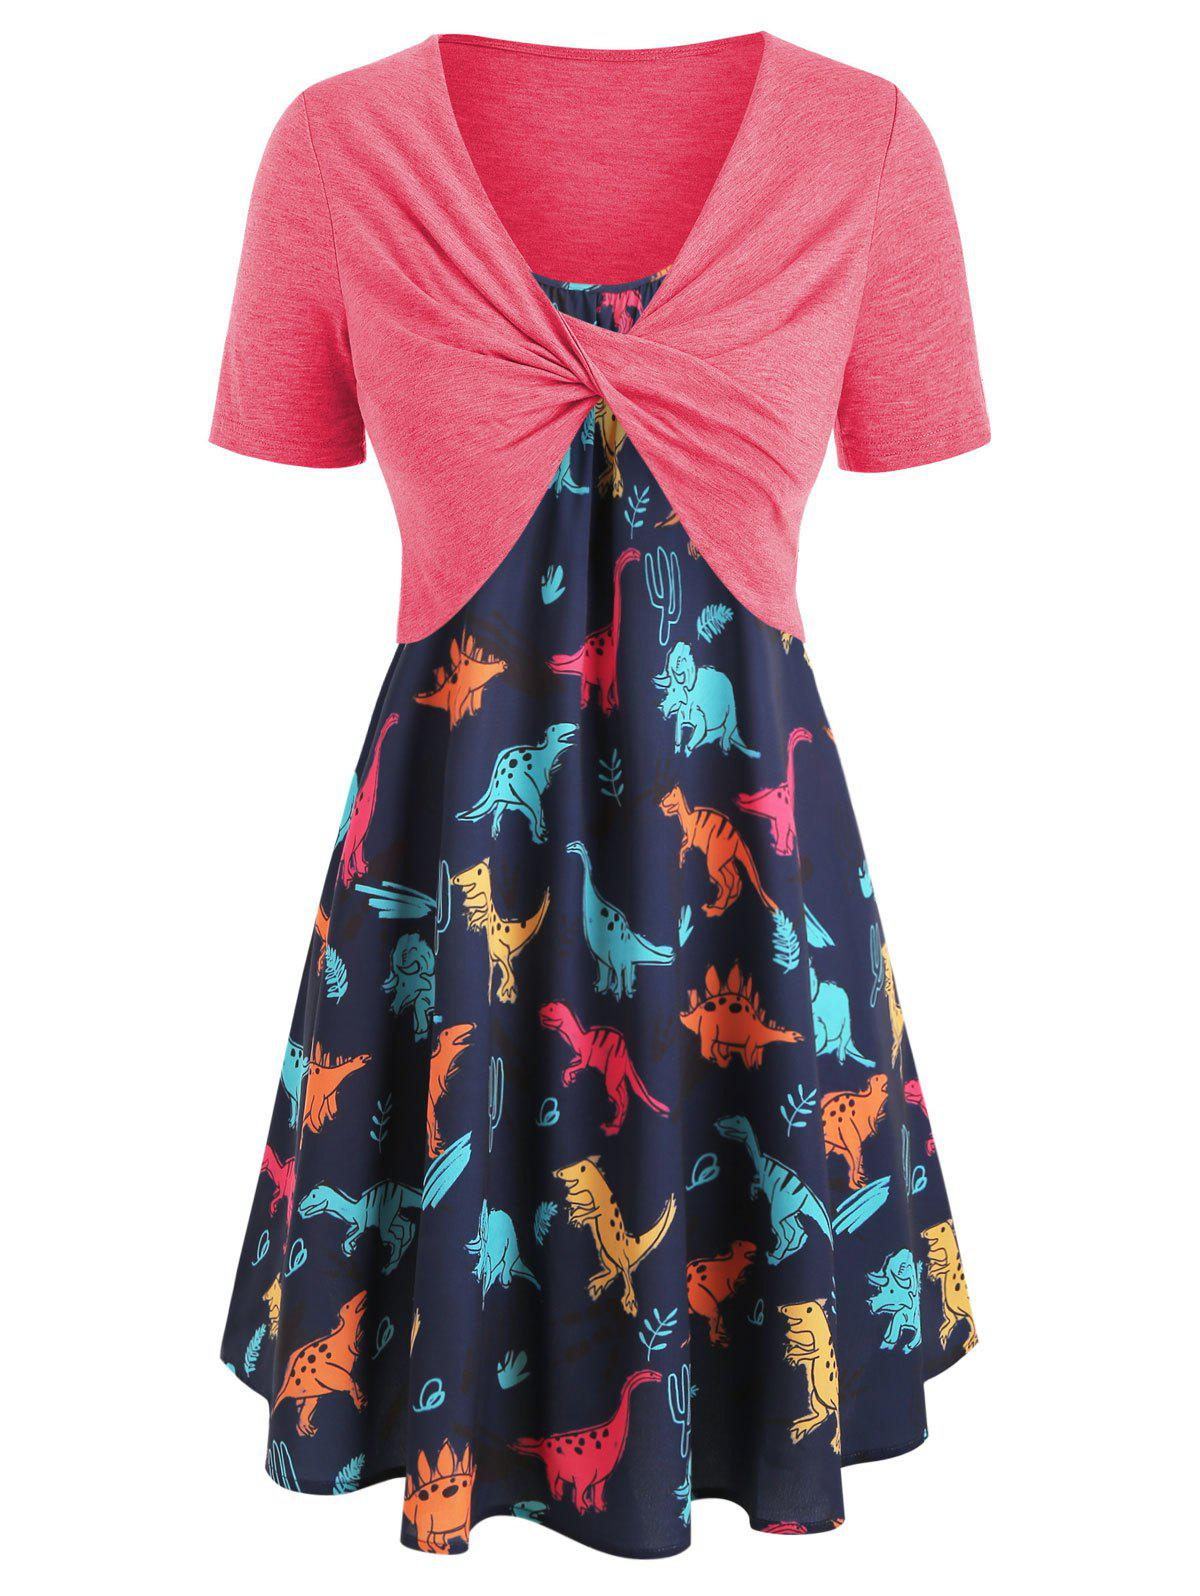 Plus Size Dinosaur Print Ruffled Dress With Twist Top